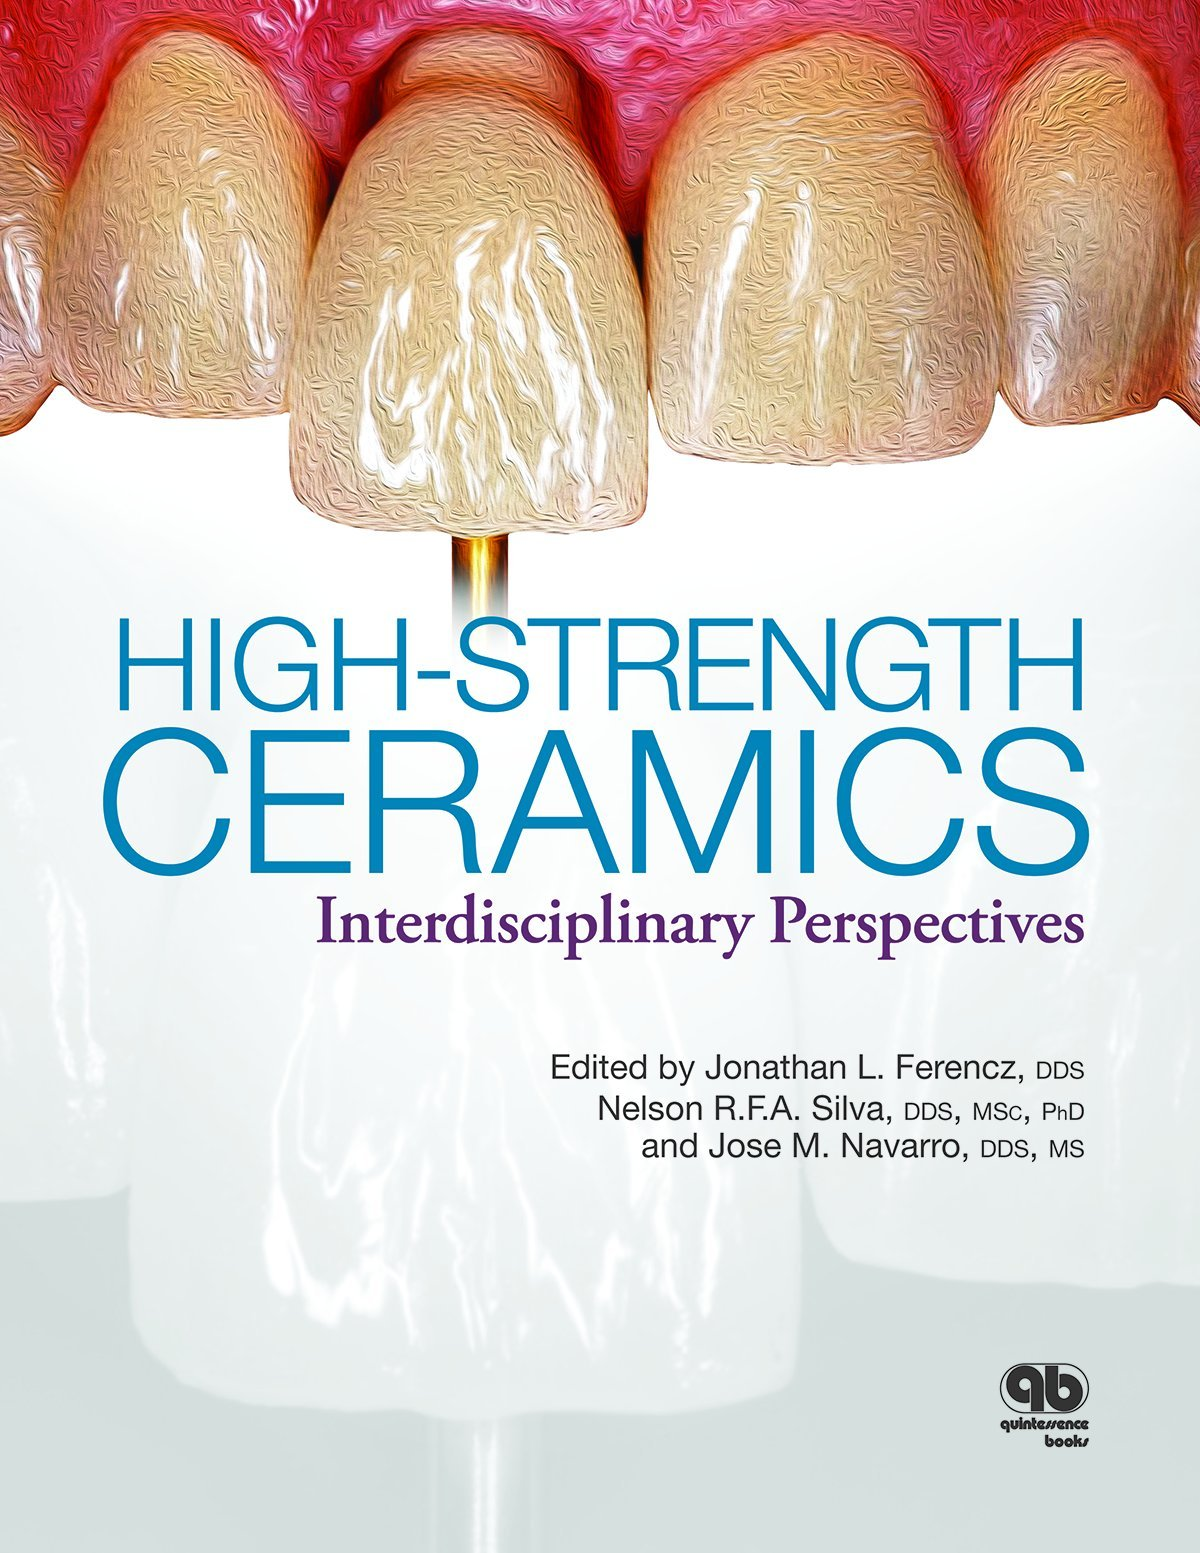 High-Strength Ceramics Interdisciplinary Perspectives